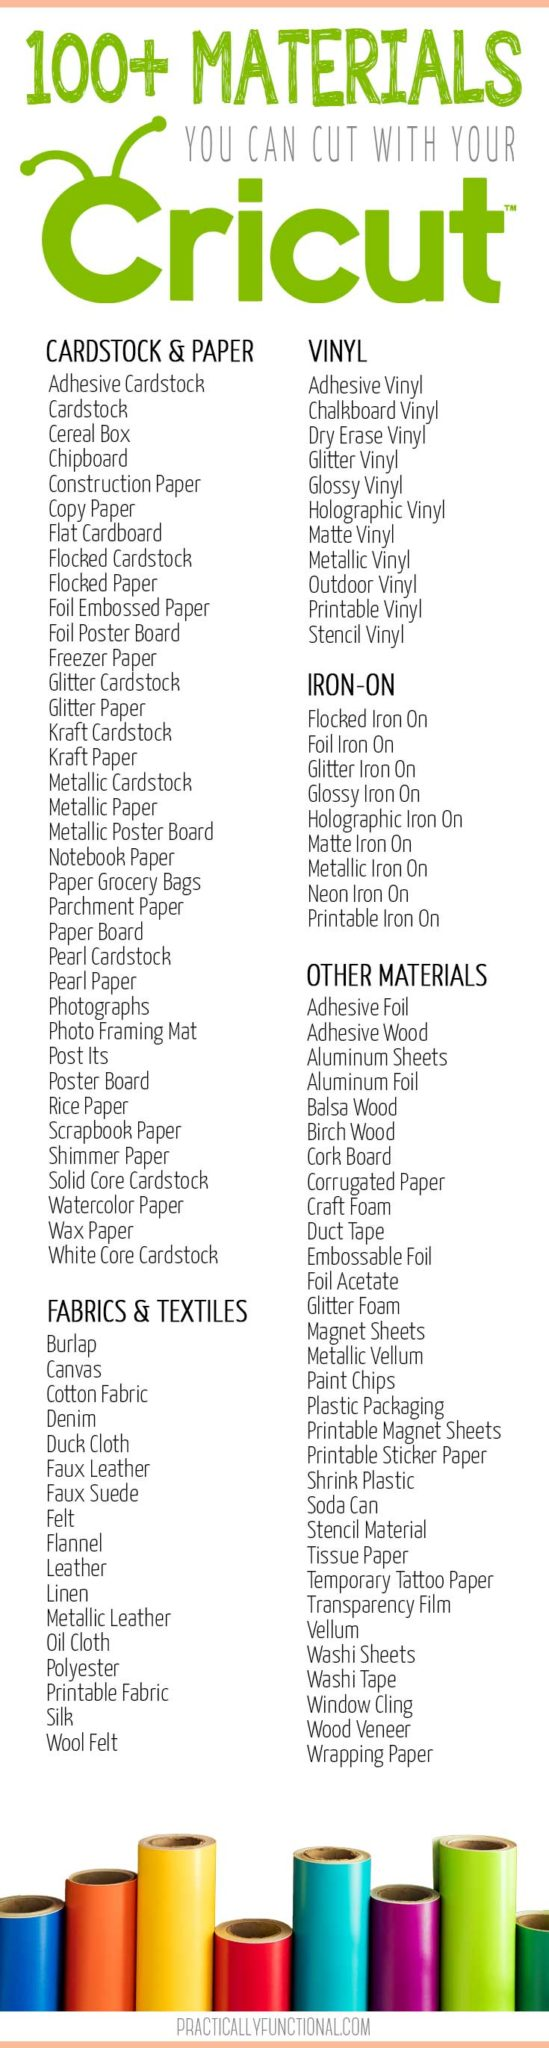 Ultimate list of 100+ materials you can cut with a Cricut machine